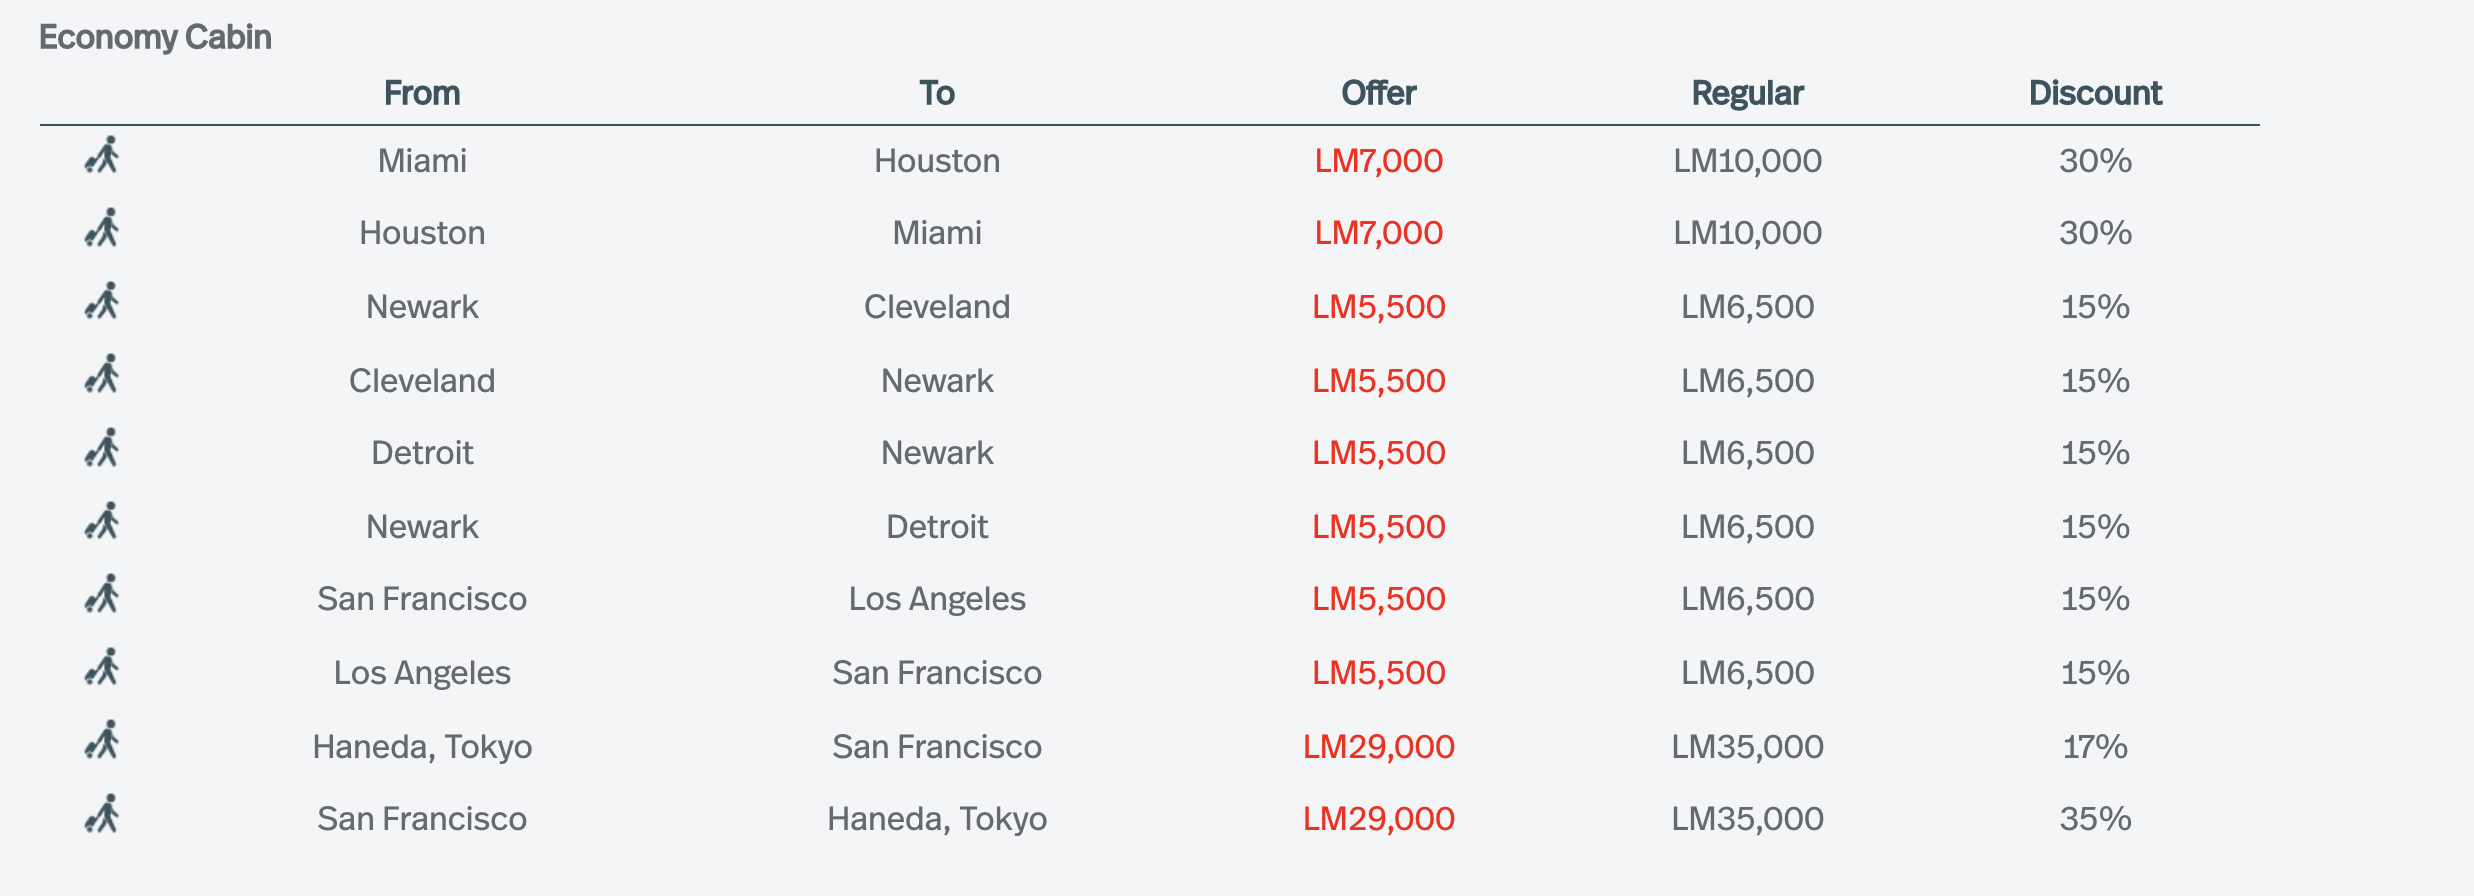 30% discount on LifeMiles bookings on select Star Alliance Routes - economy routes